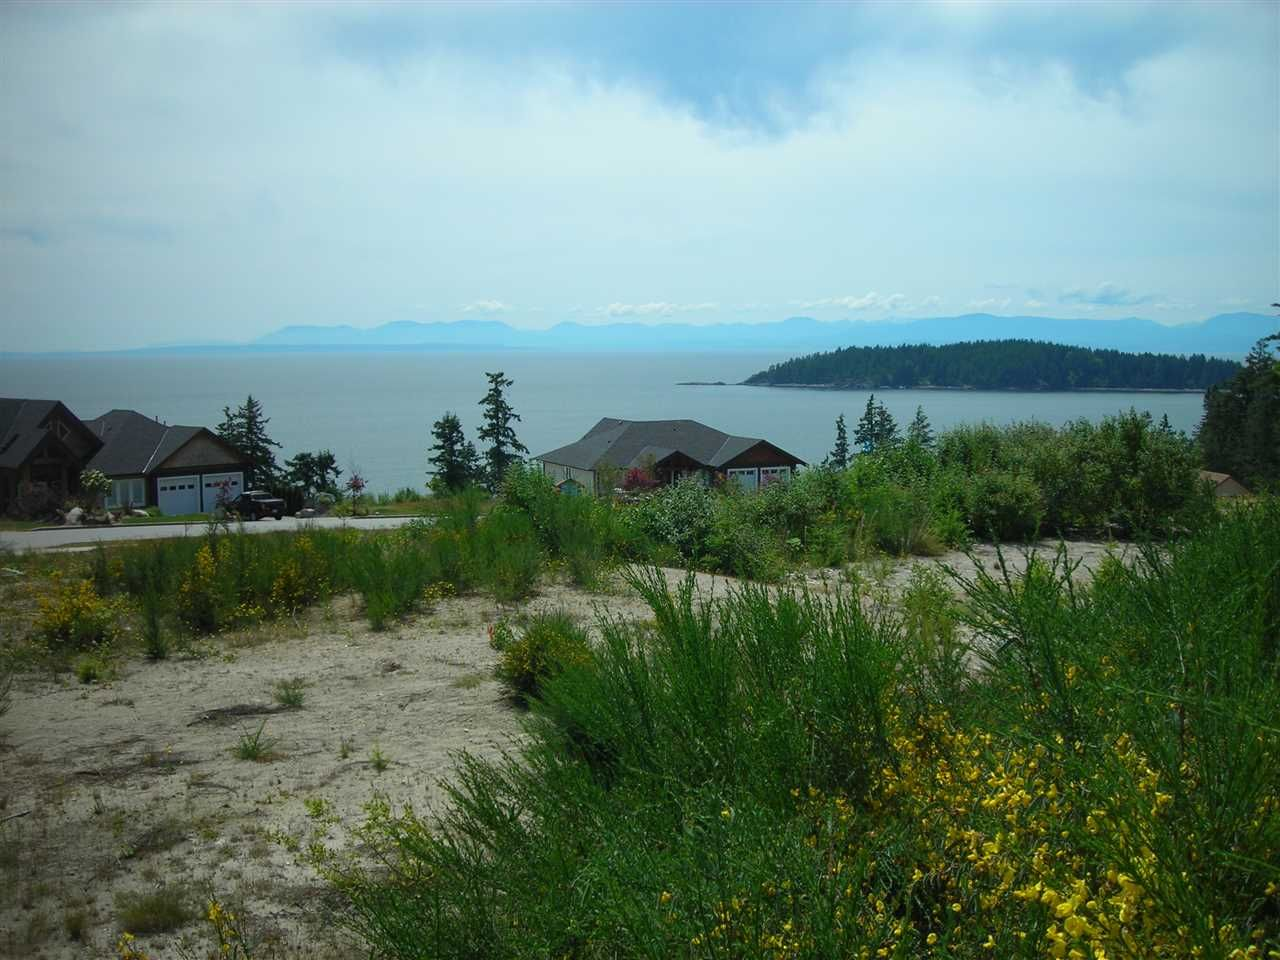 Main Photo: LOT 52 COMPASS LANE in Sechelt: Sechelt District Land for sale (Sunshine Coast)  : MLS®# R2042193